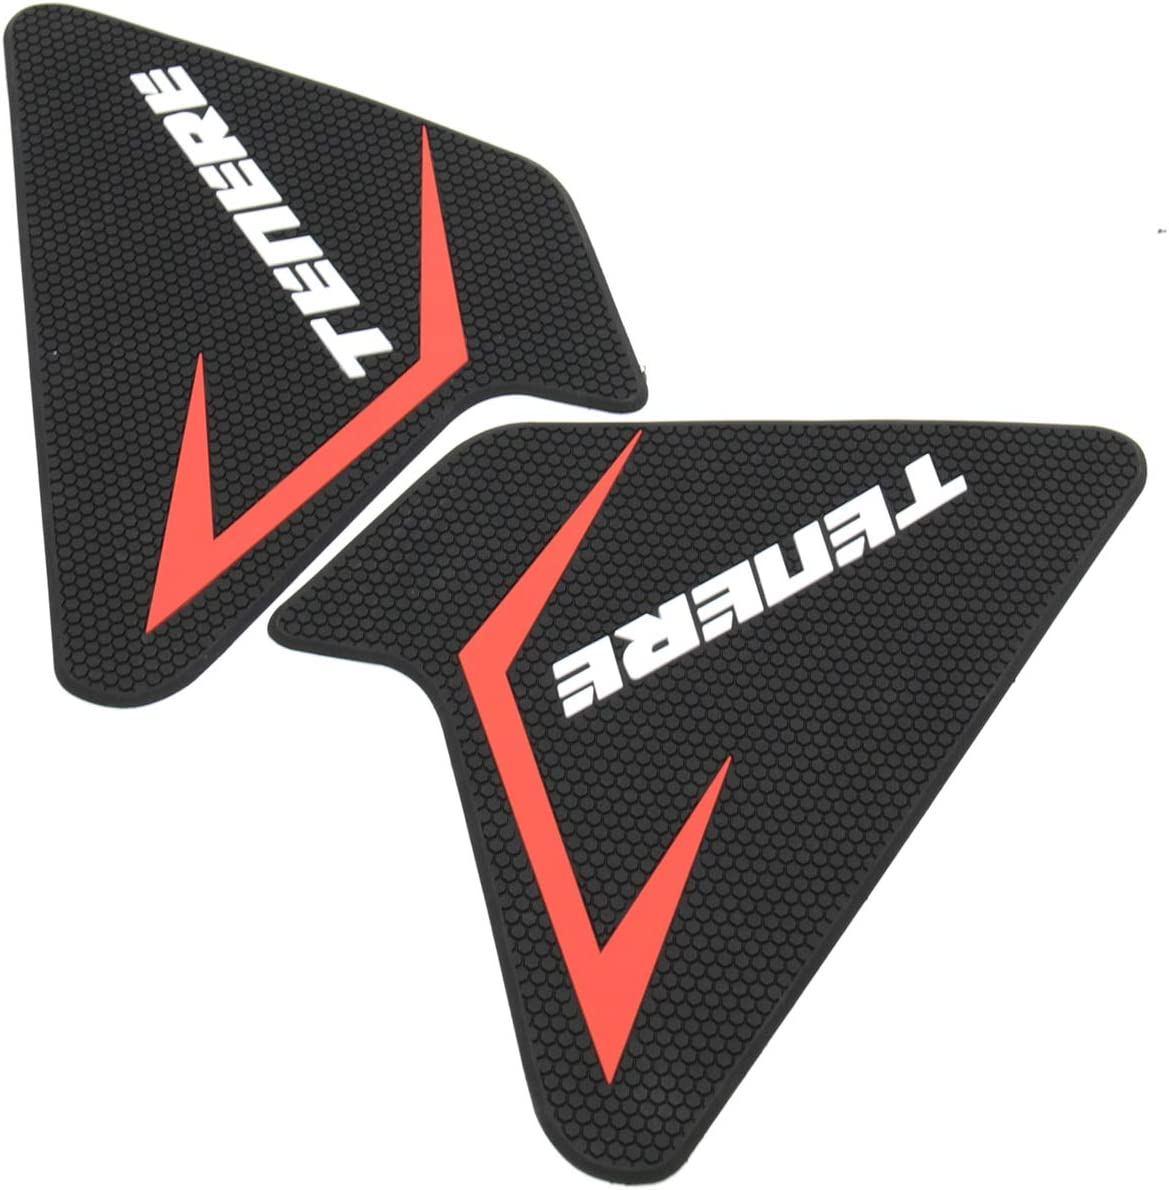 Carrfan Motorcycle Tank Traction Pad Side Gas Kneepad Protector Sticker Replacement for Yamaha Super Tenere XT1200Z XT 1200Z 2010-2019